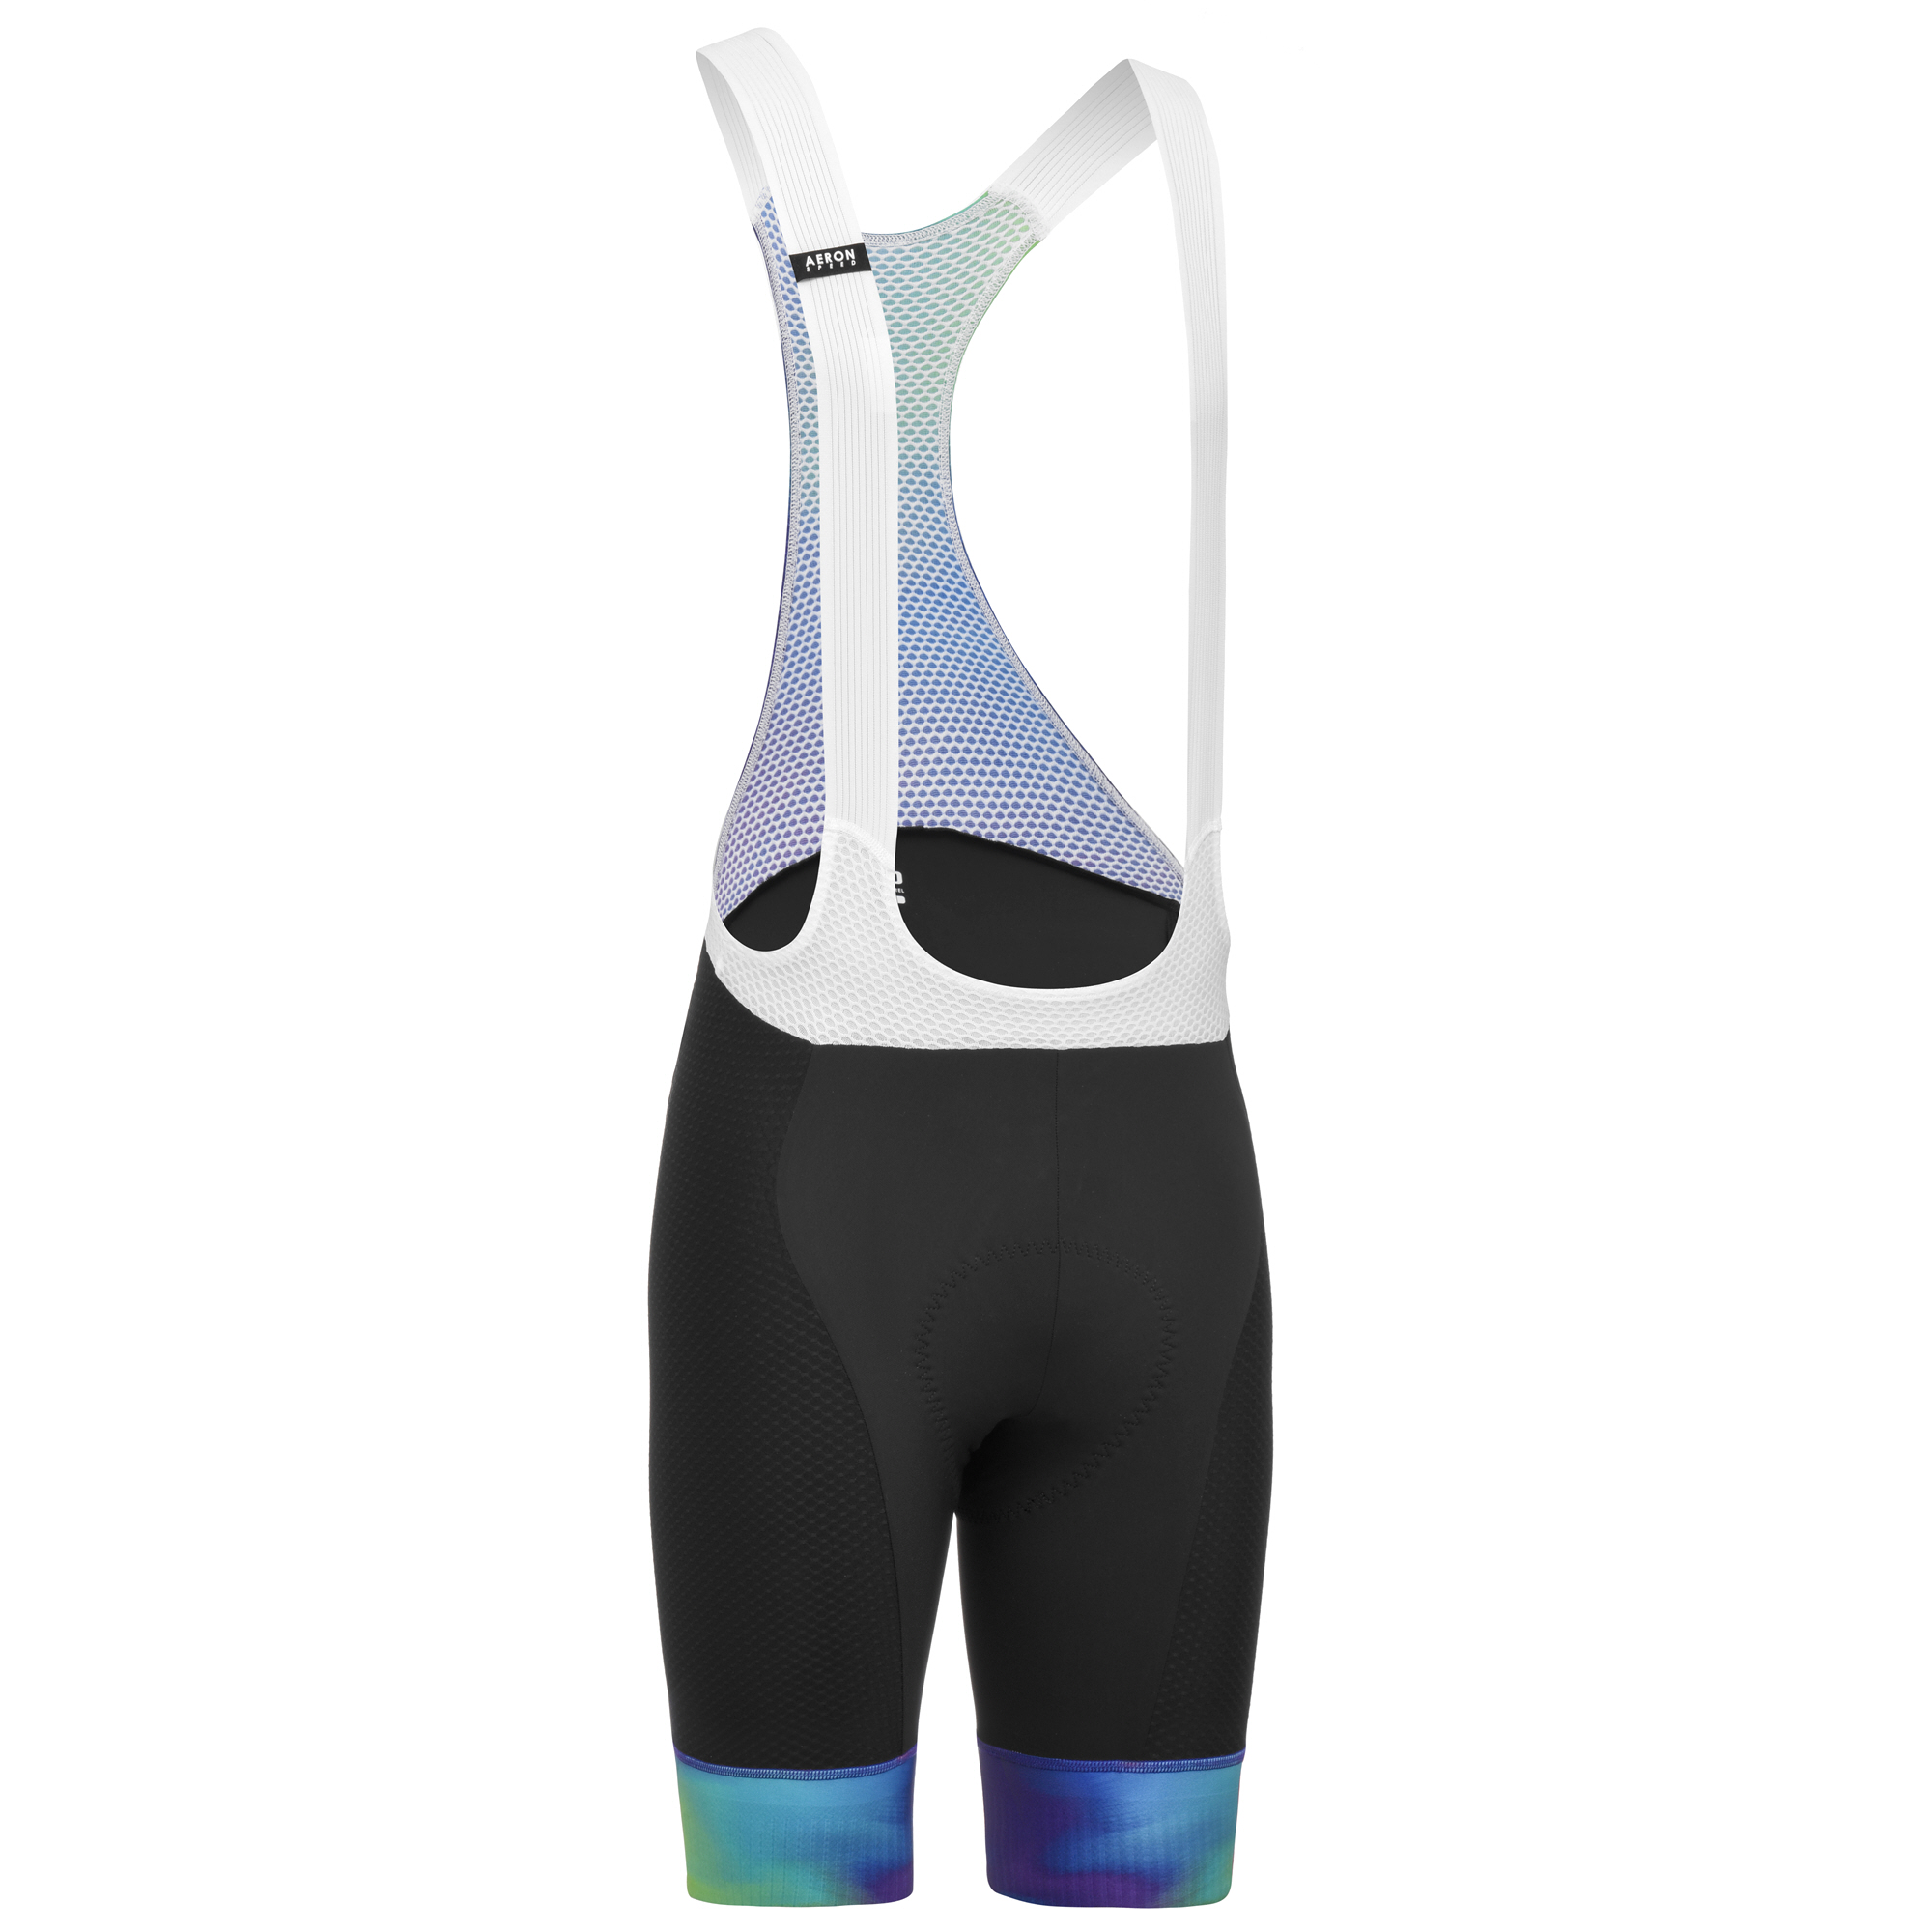 dhb Aeron Speed Bib Shorts - Chroma | Trousers